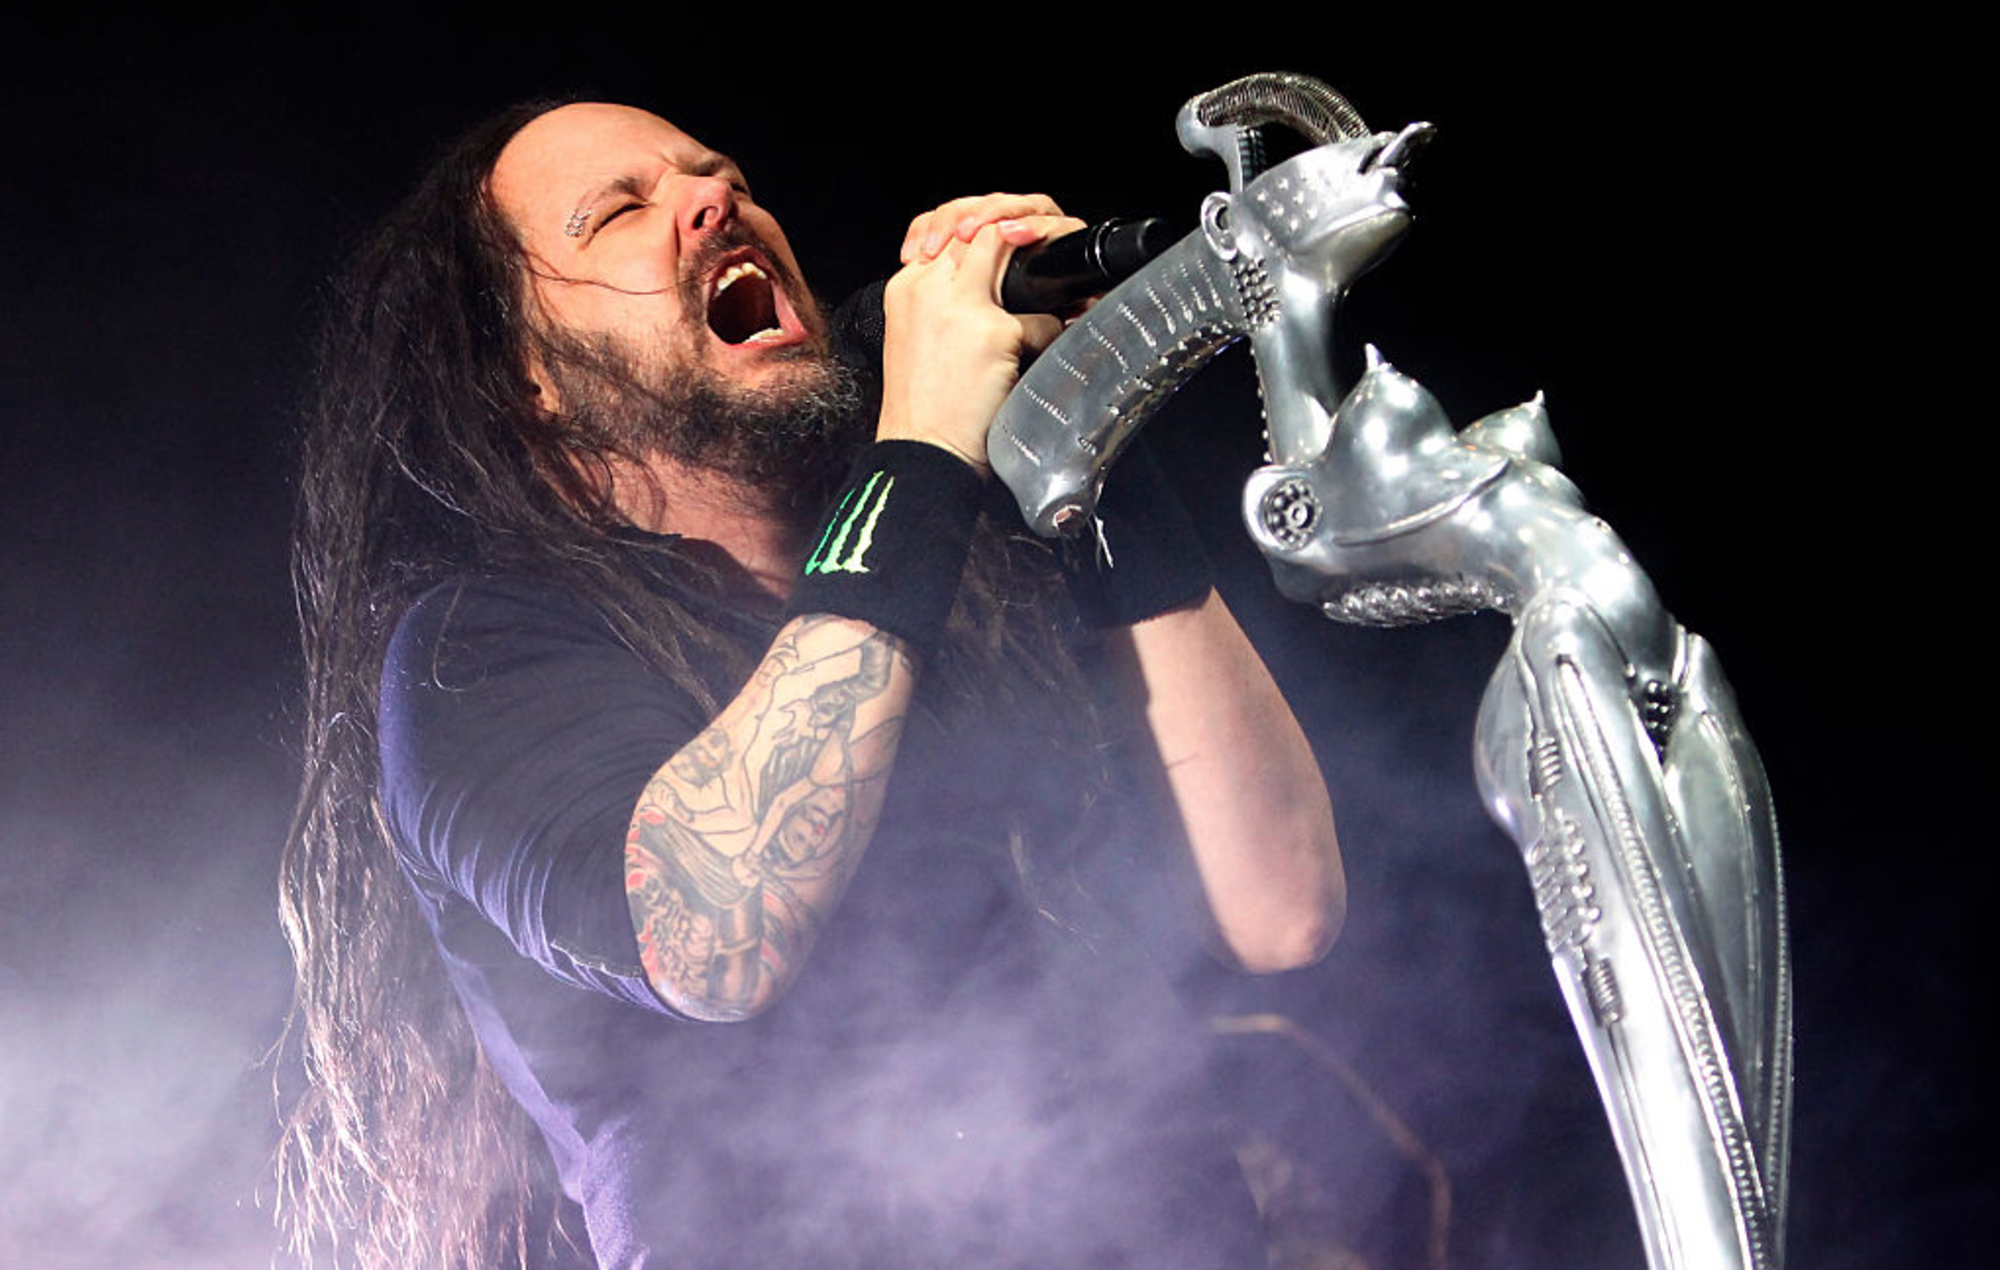 Korn look at the world through a digital lens in 'Can You Hear Me' video - EpicNews